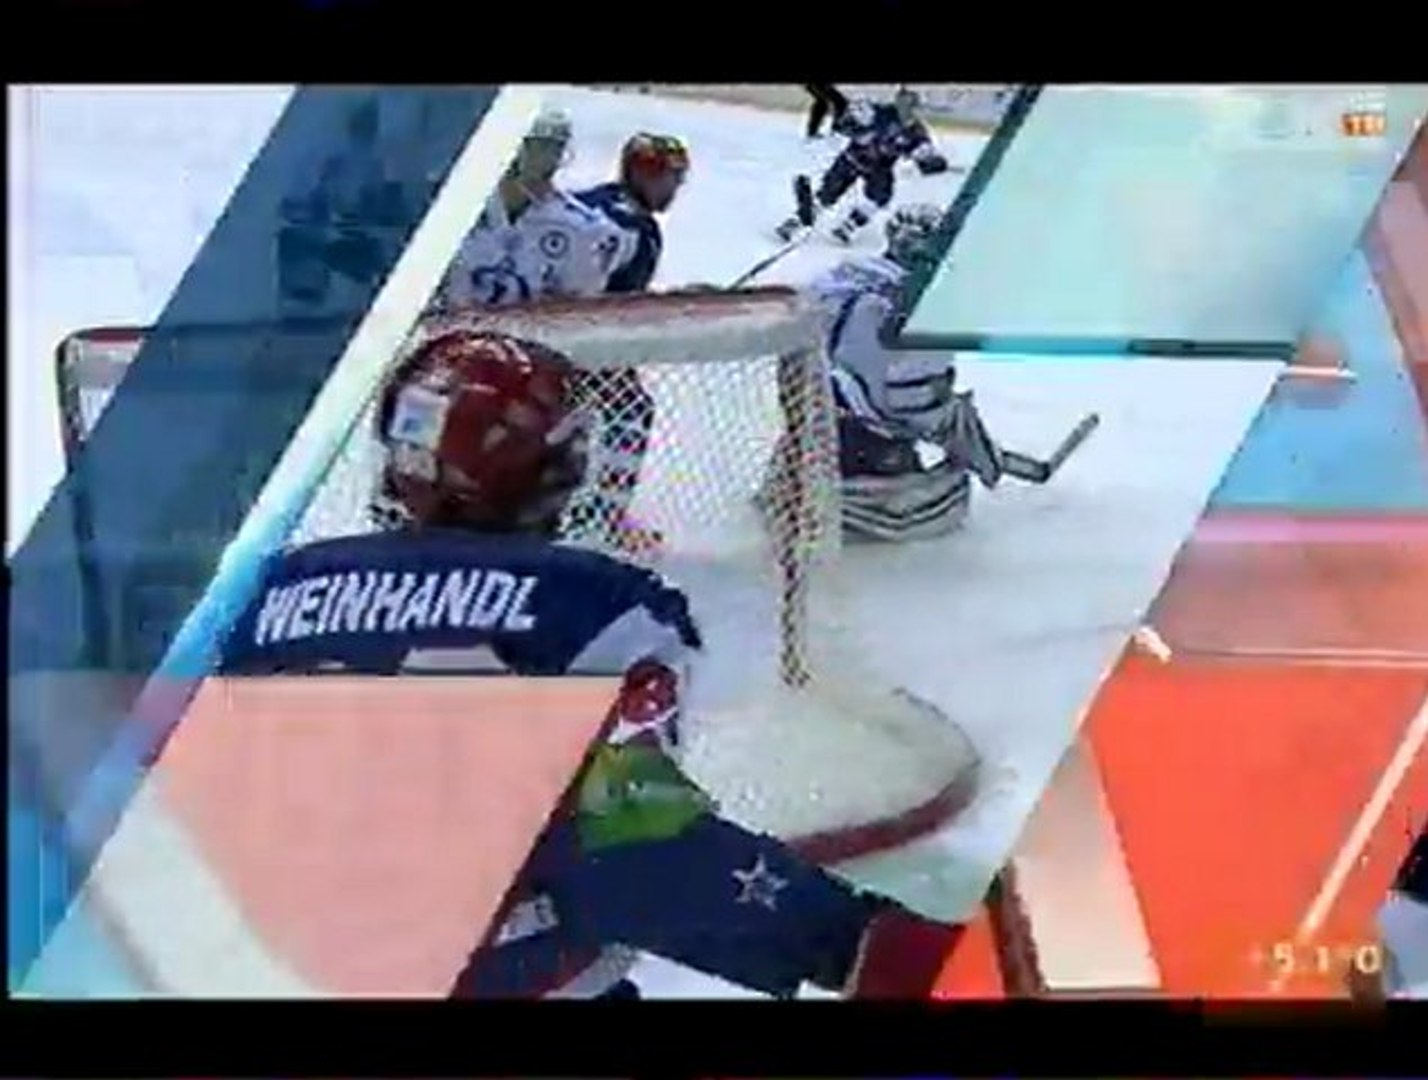 СКА - Динамо Хоккей голы SKA – DINAMO (3:4) Петербург Hockey KHL 2011